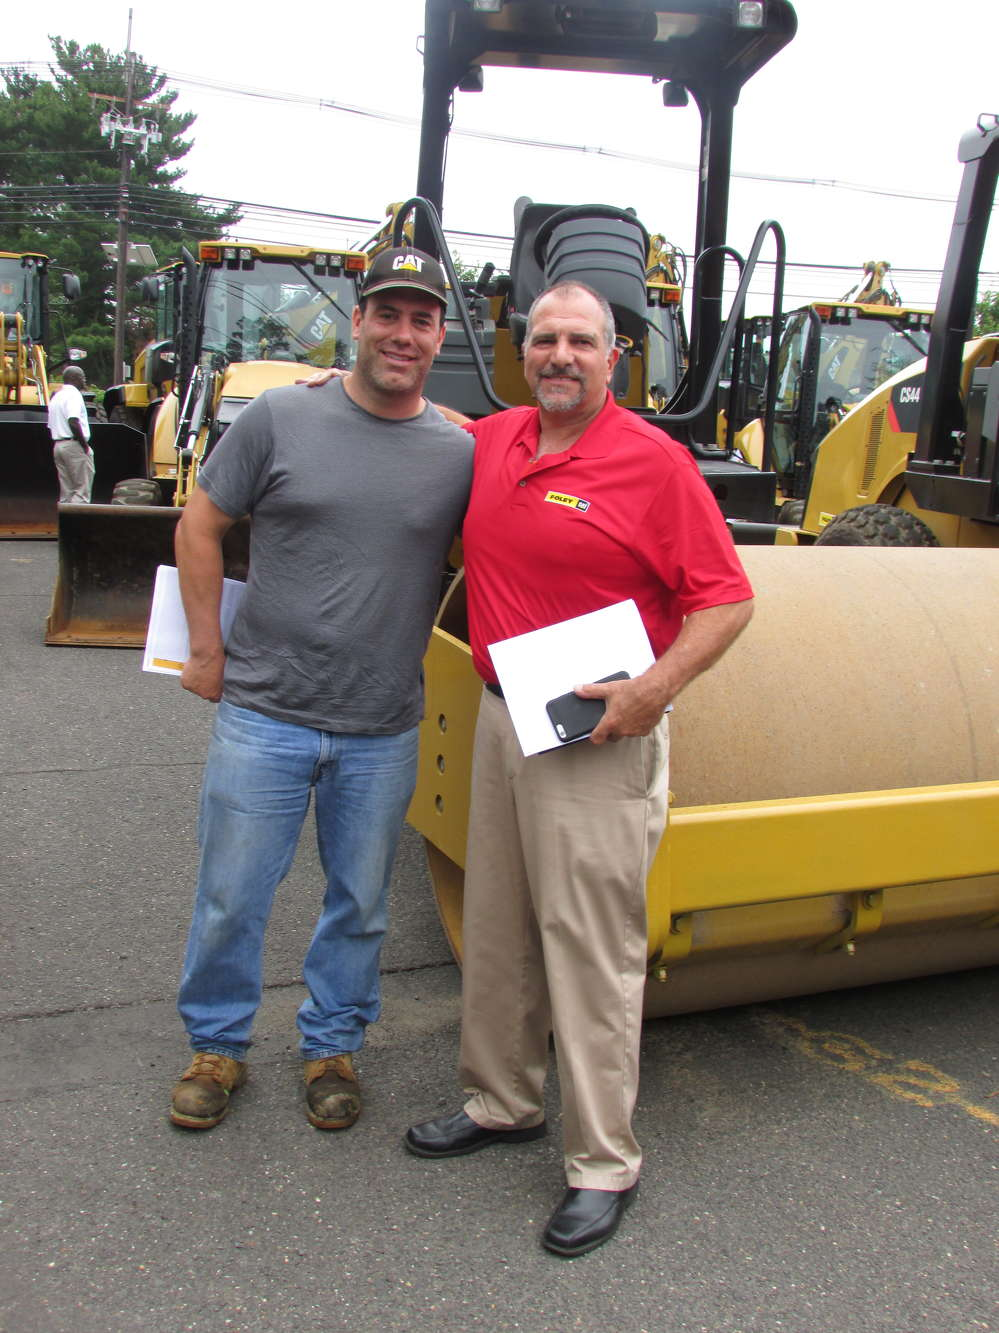 John Holley (L) of Big City Paving, Staten Island, N.Y., and Tom Alfano of Foley CAT. Holley is considering purchasing a Caterpillar 289C2 track skid steer.